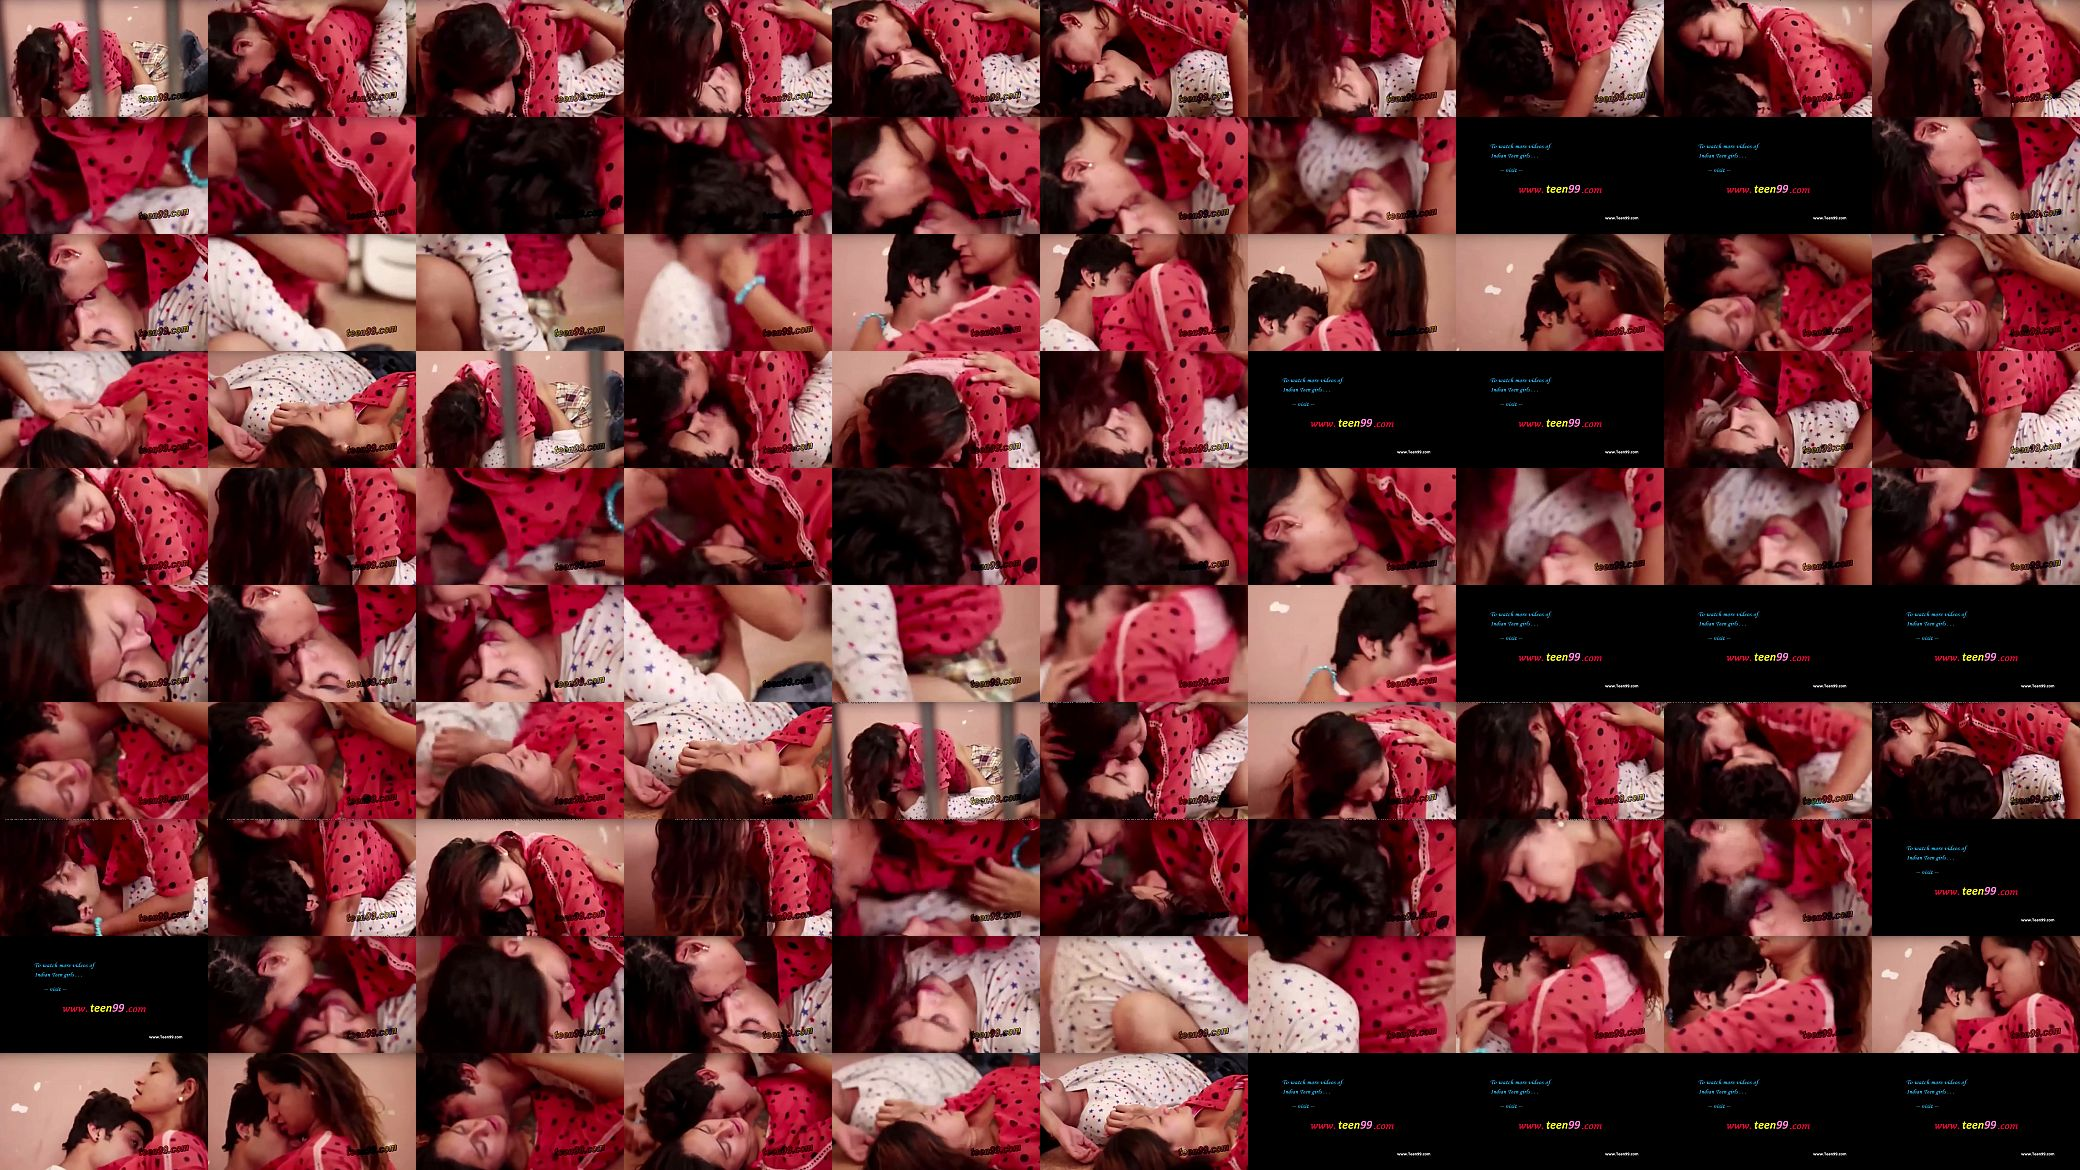 Indian Desi Sex Videos Downloads Delightful indian cute couples are making out in desi film style - xnxx